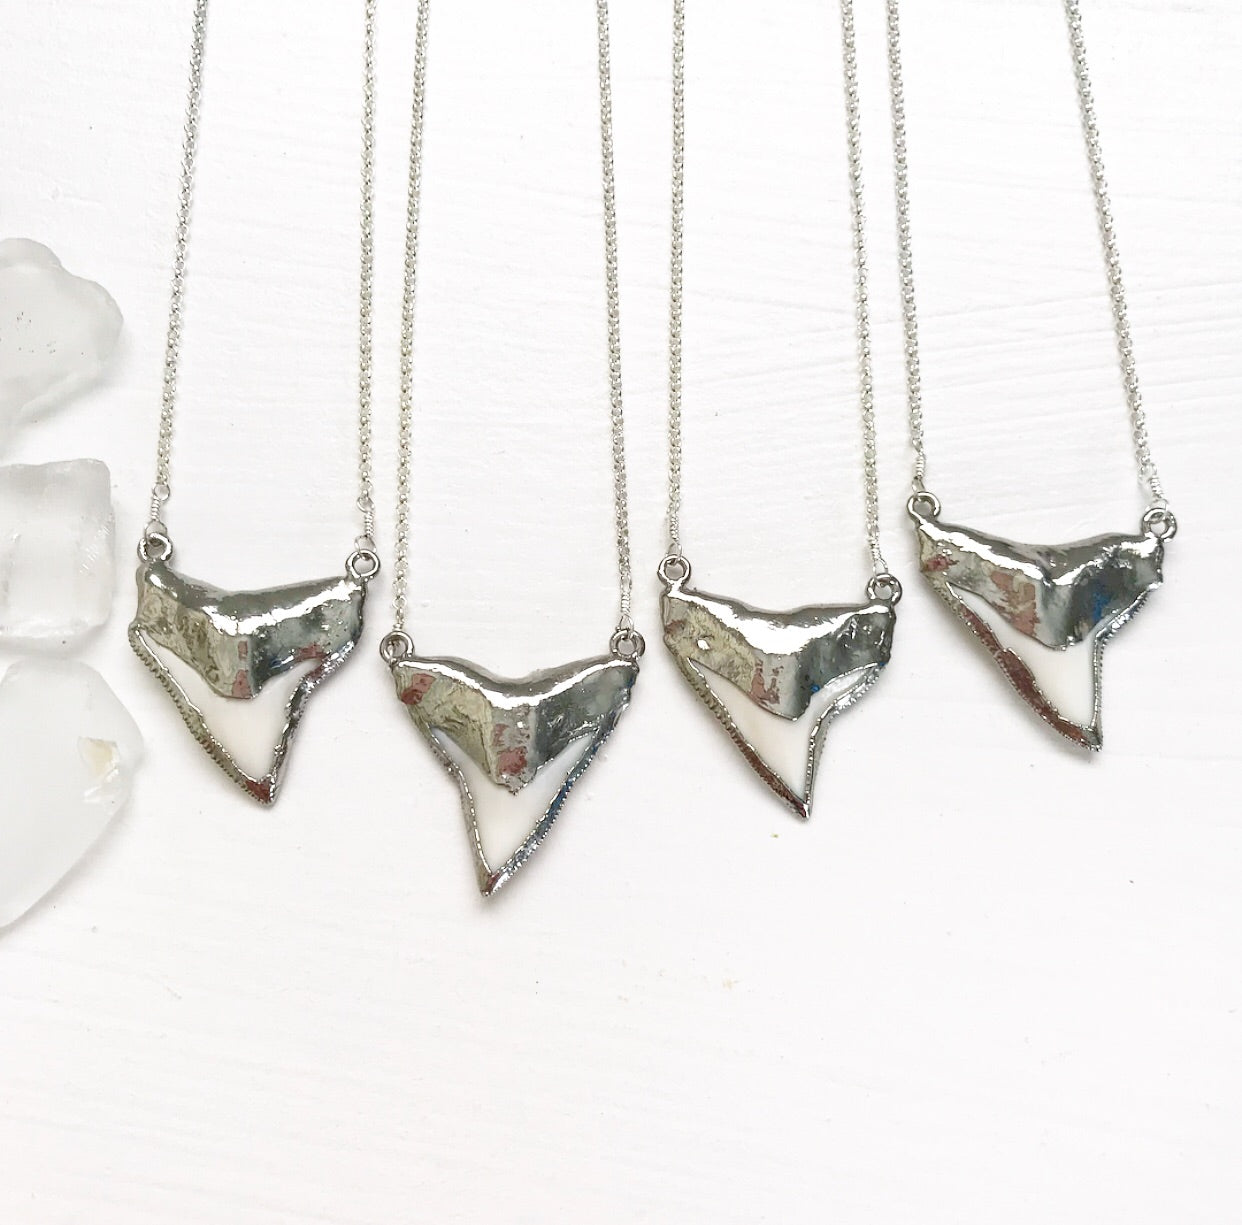 586-Shark Tooth Necklace